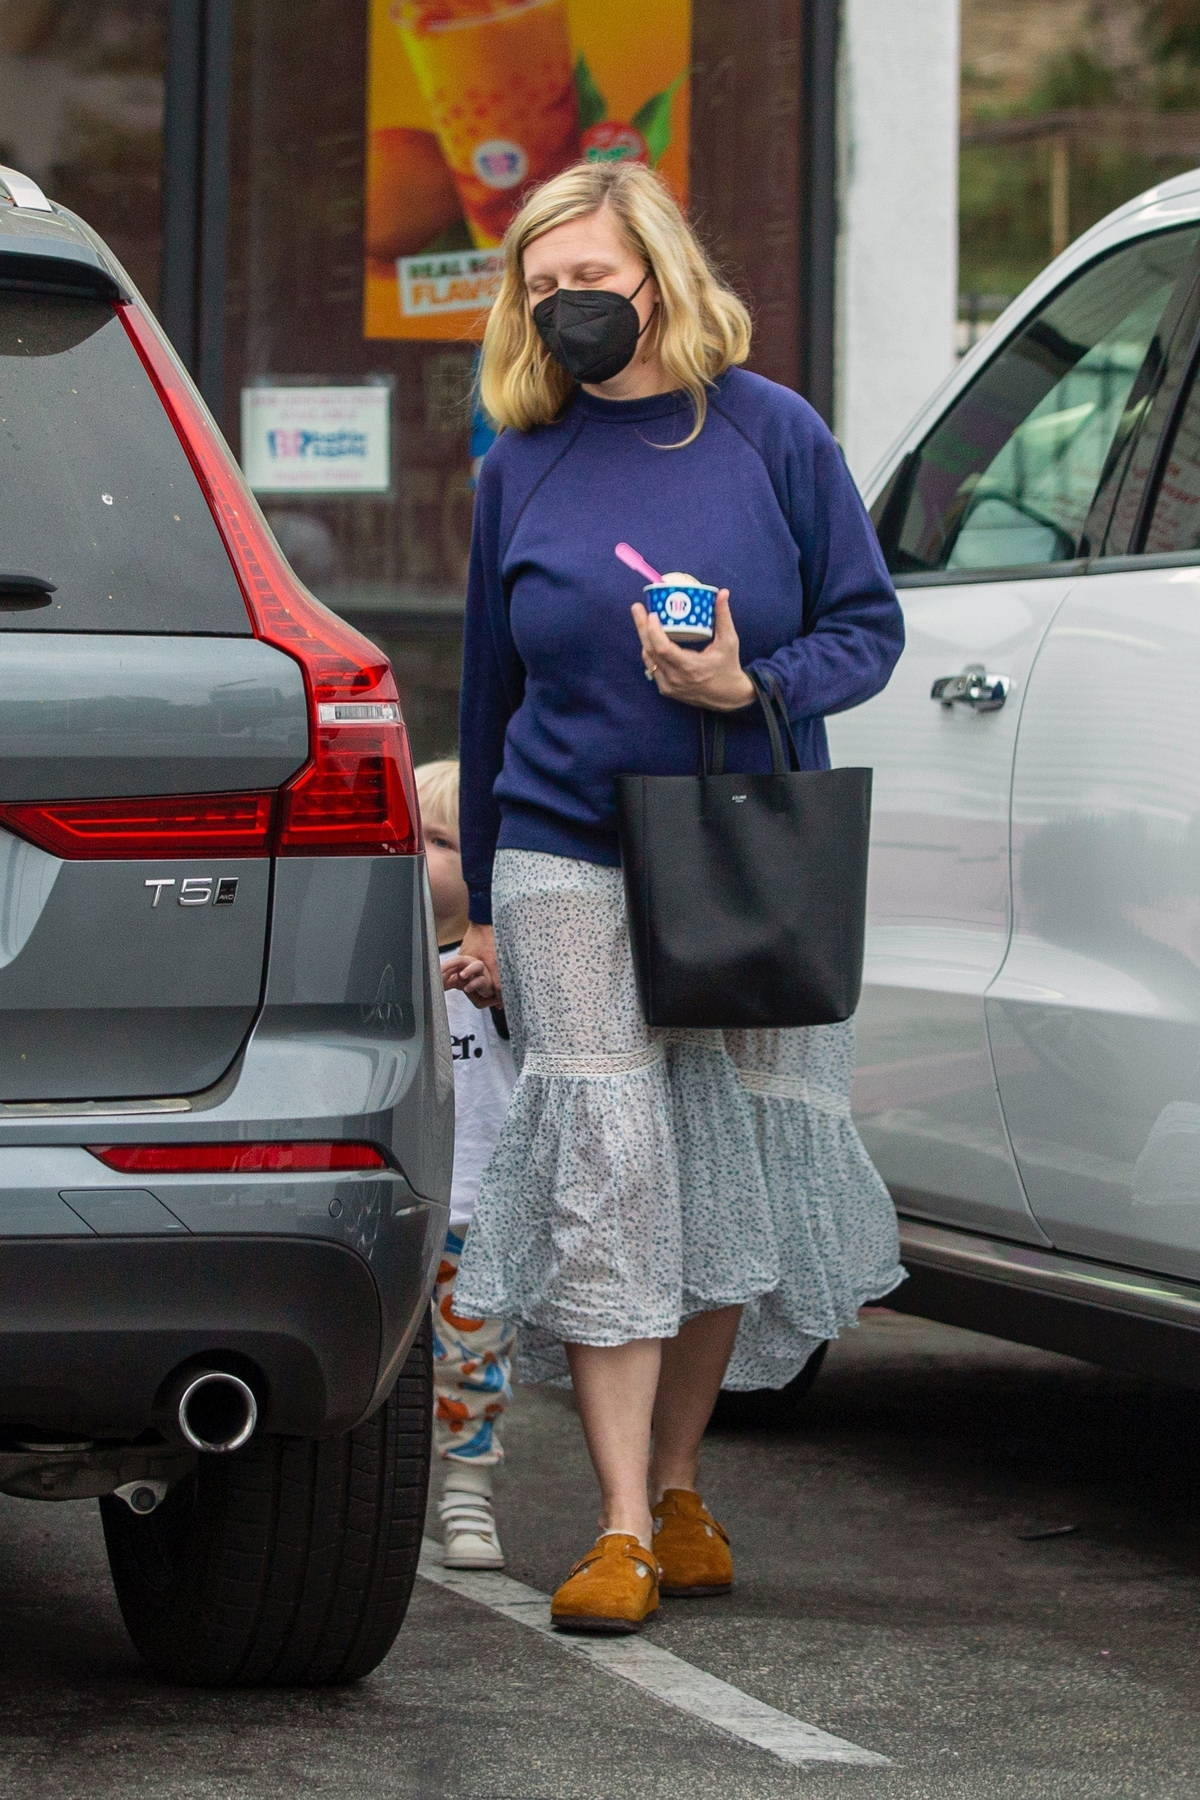 Kirsten Dunst takes her son out for some ice cream at Baskin-Robbins in Los Angeles